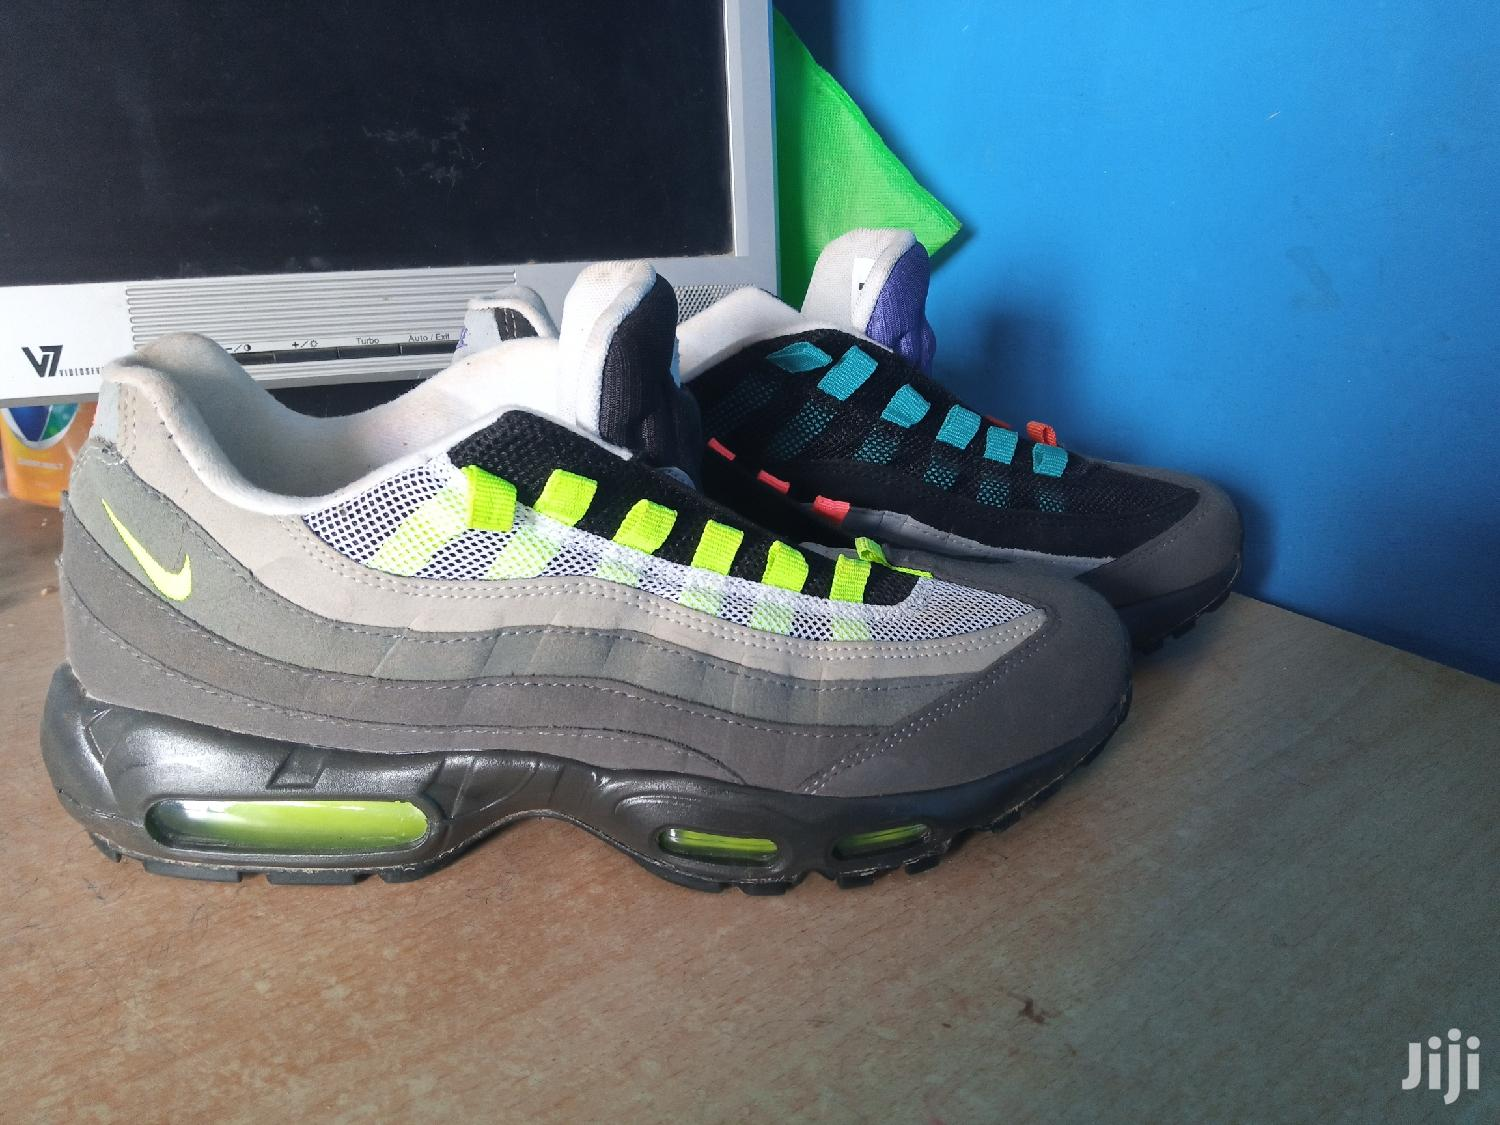 Archive: New Nike Air Max Sneakers